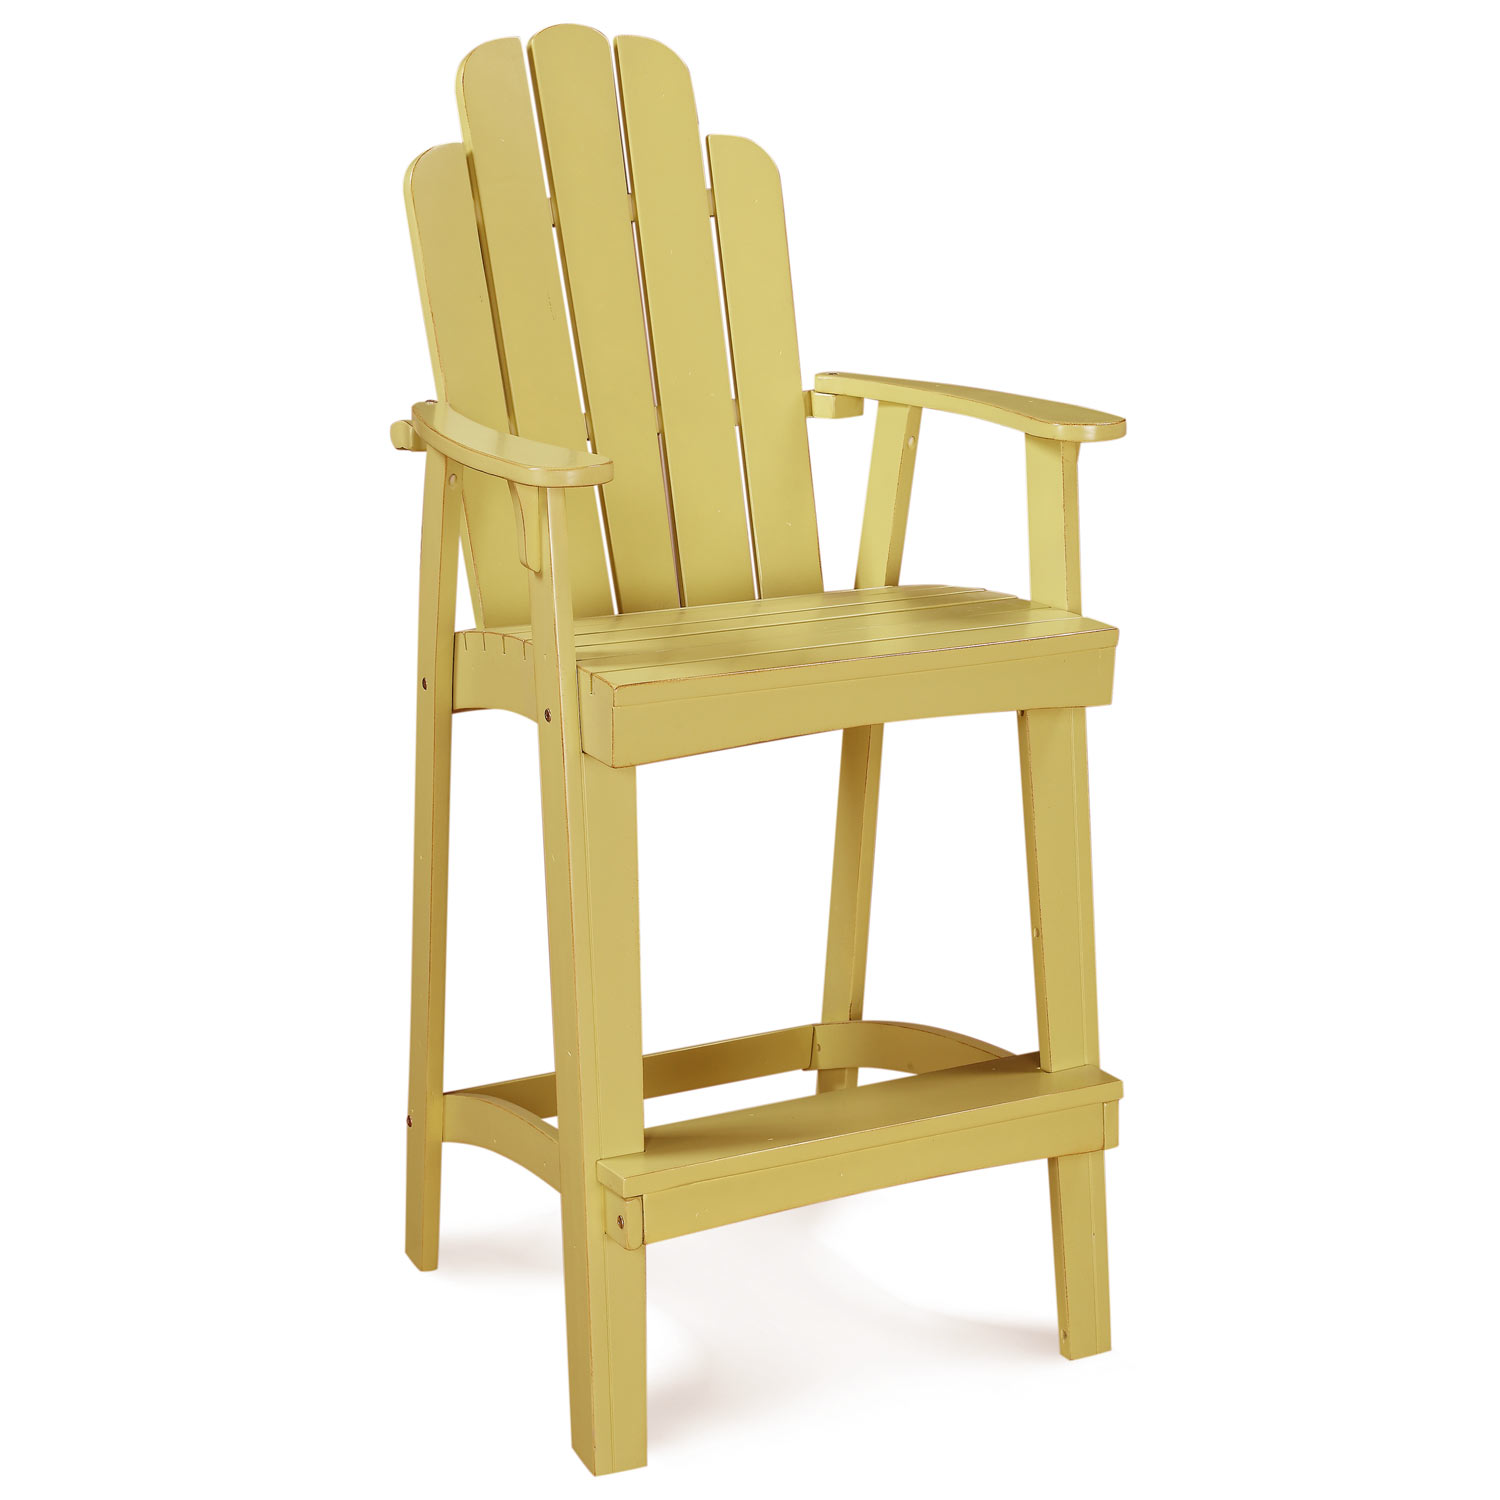 30quot Patio Adirondack Bar Stool Rustic Scalloped Back  : crf 2bs30 ly from www.dcgstores.com size 1500 x 1500 jpeg 133kB